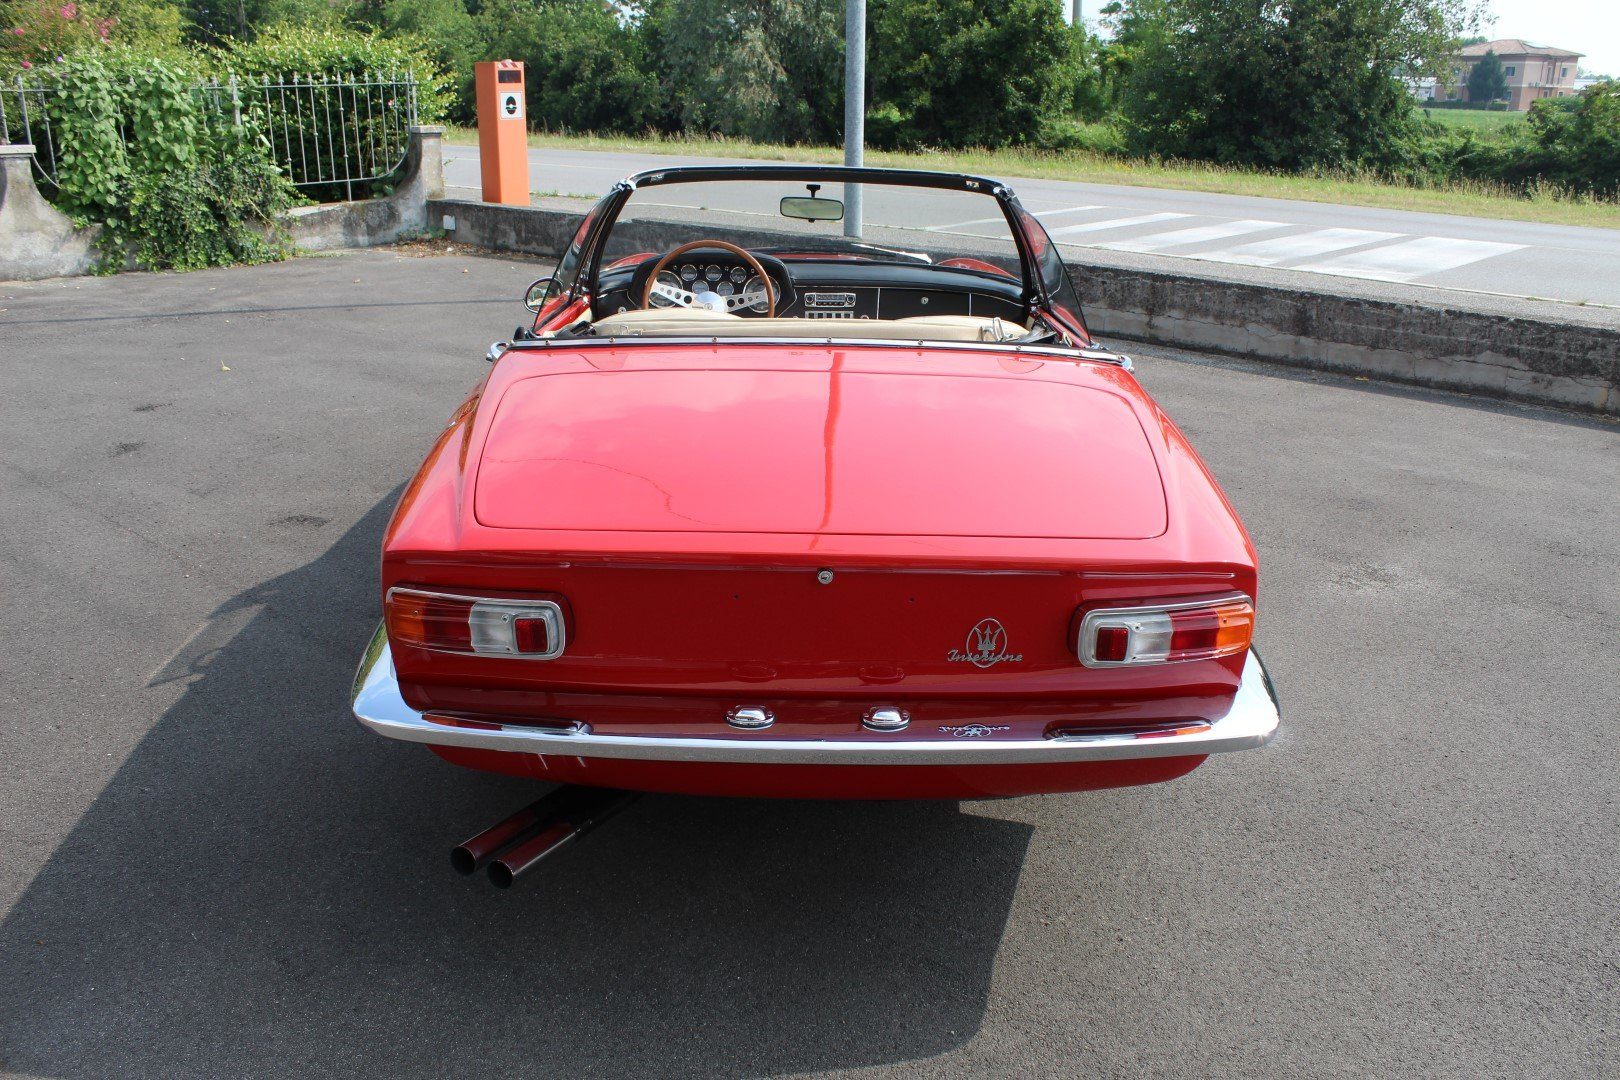 1965 Maserati Mistral 3.7 Spyder For Sale (picture 3 of 6)